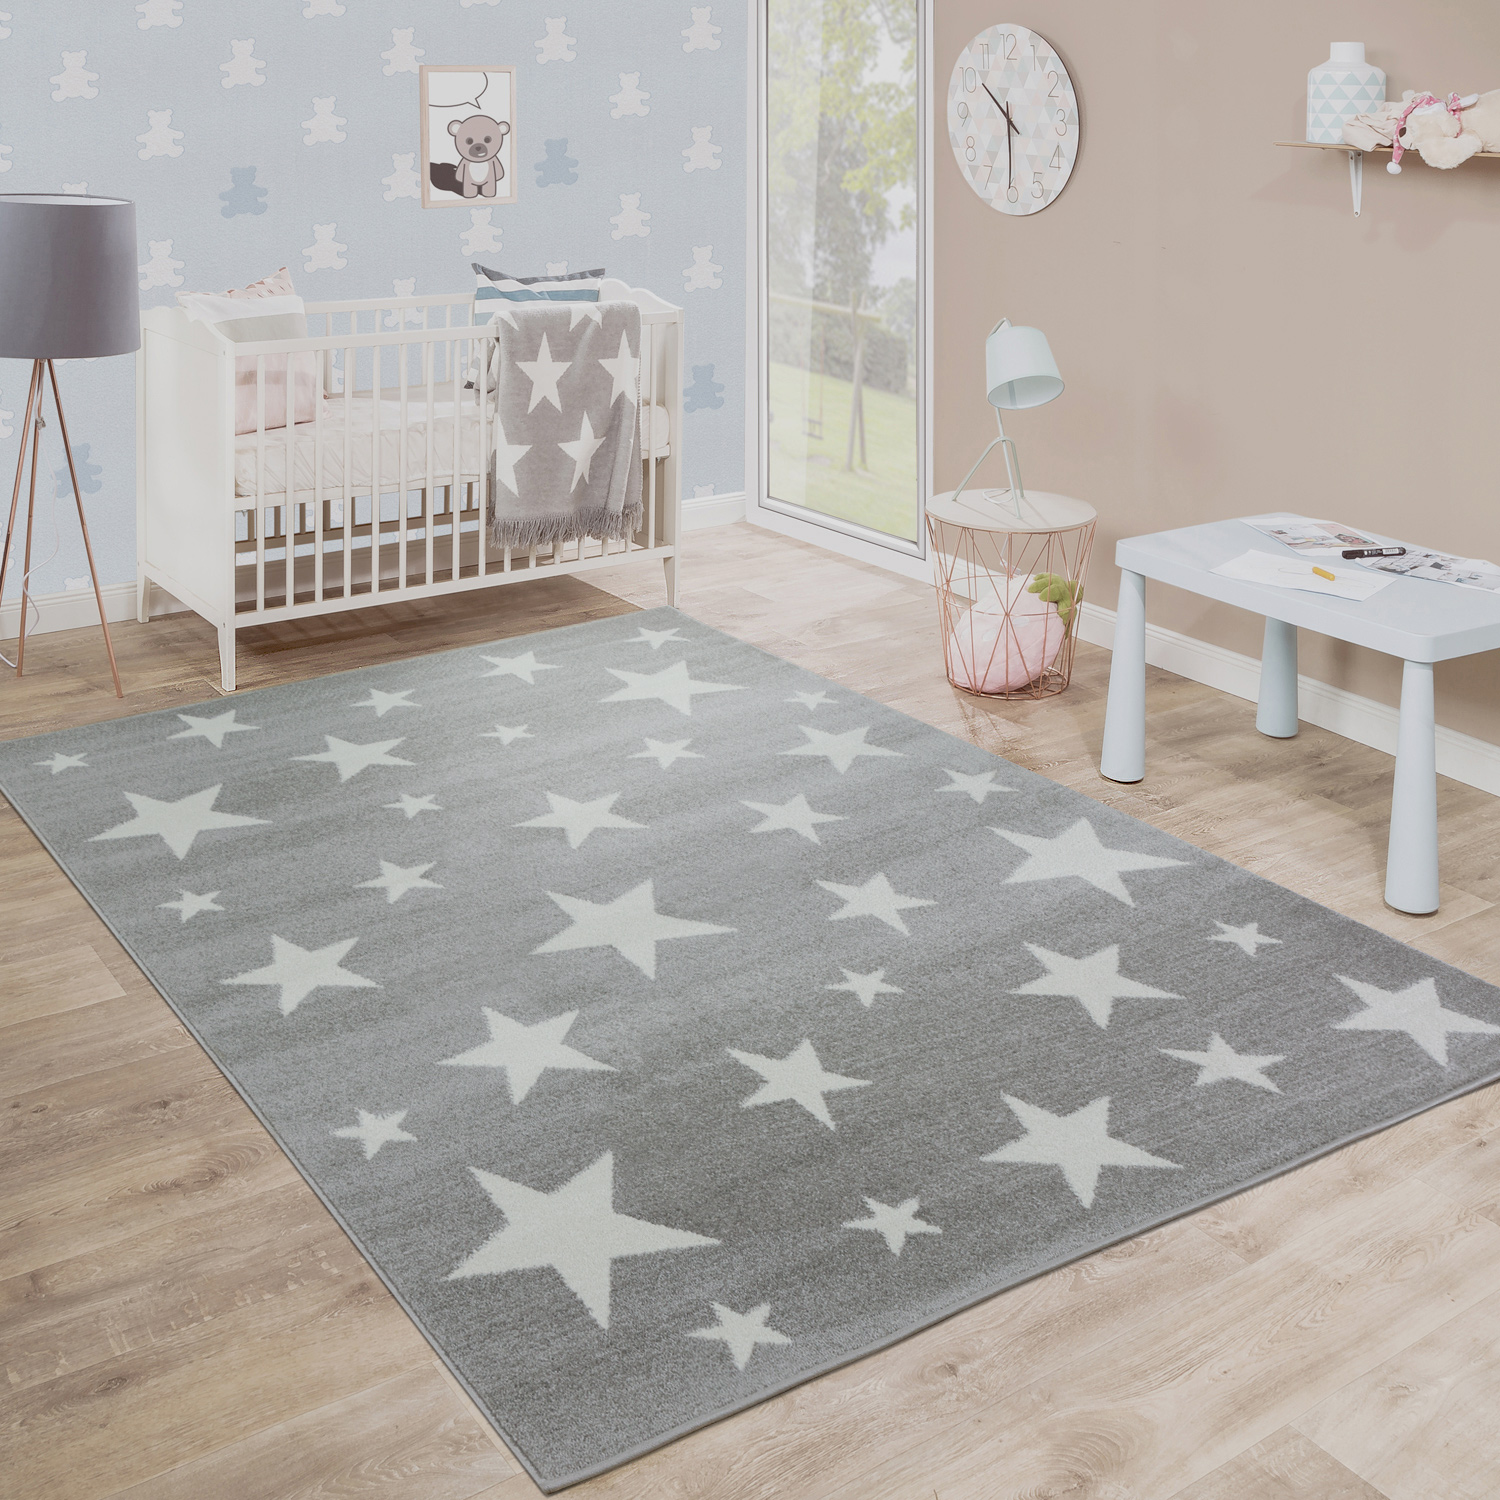 rug rugs area dot of cool room exemplary bedroom s for playroom ingenuity picture carpet photos children fresh pink toddler large boys kids polka most